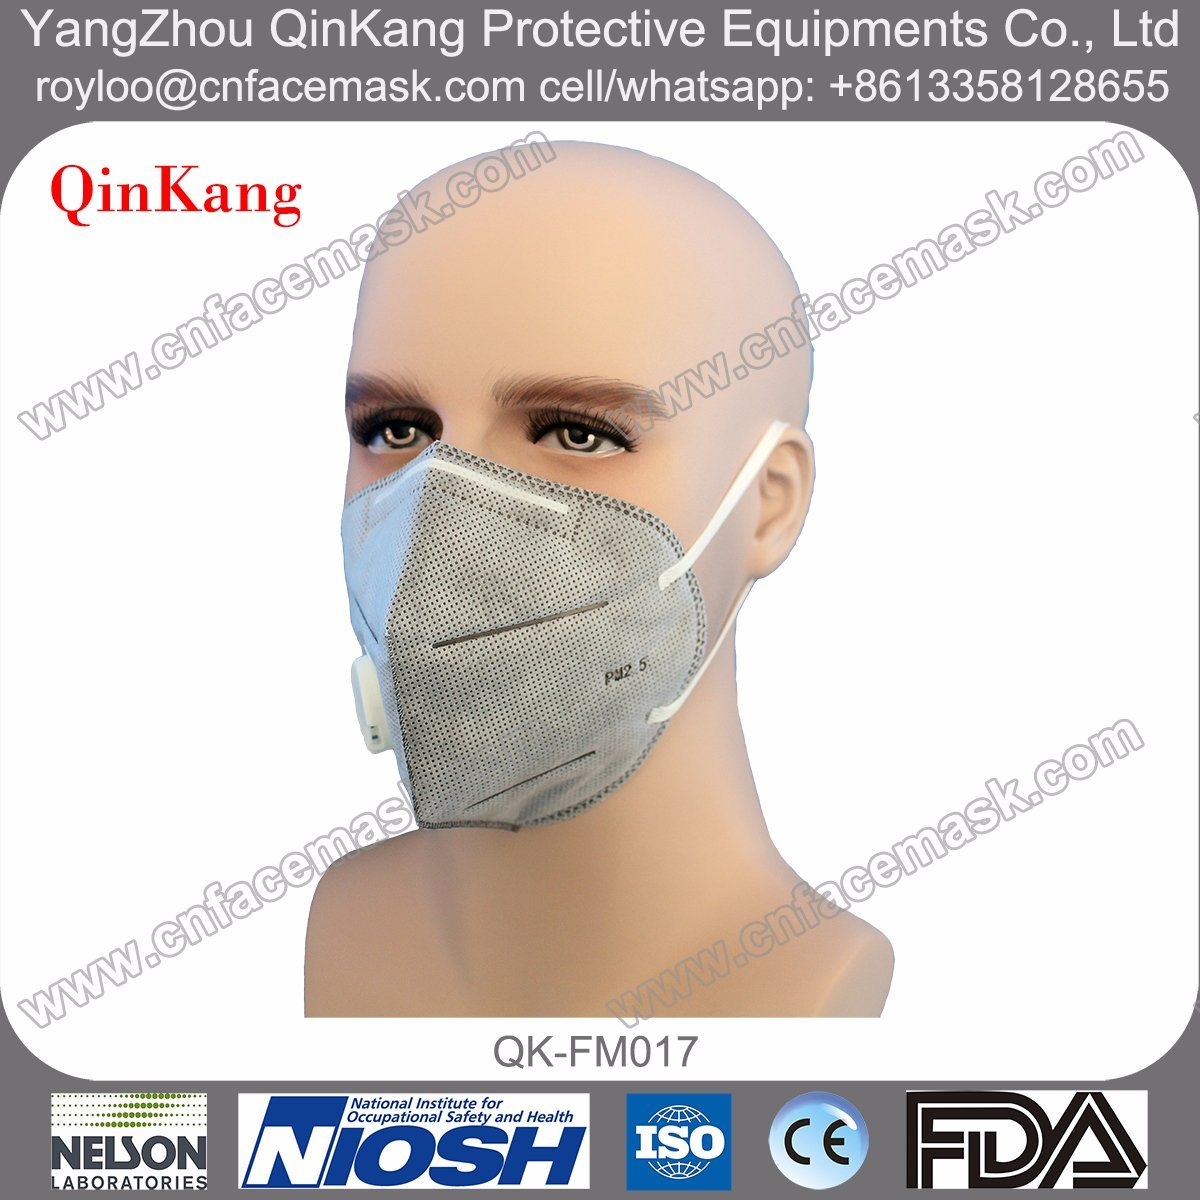 4ply Disposable Dust Mask, Dust Protective Mask